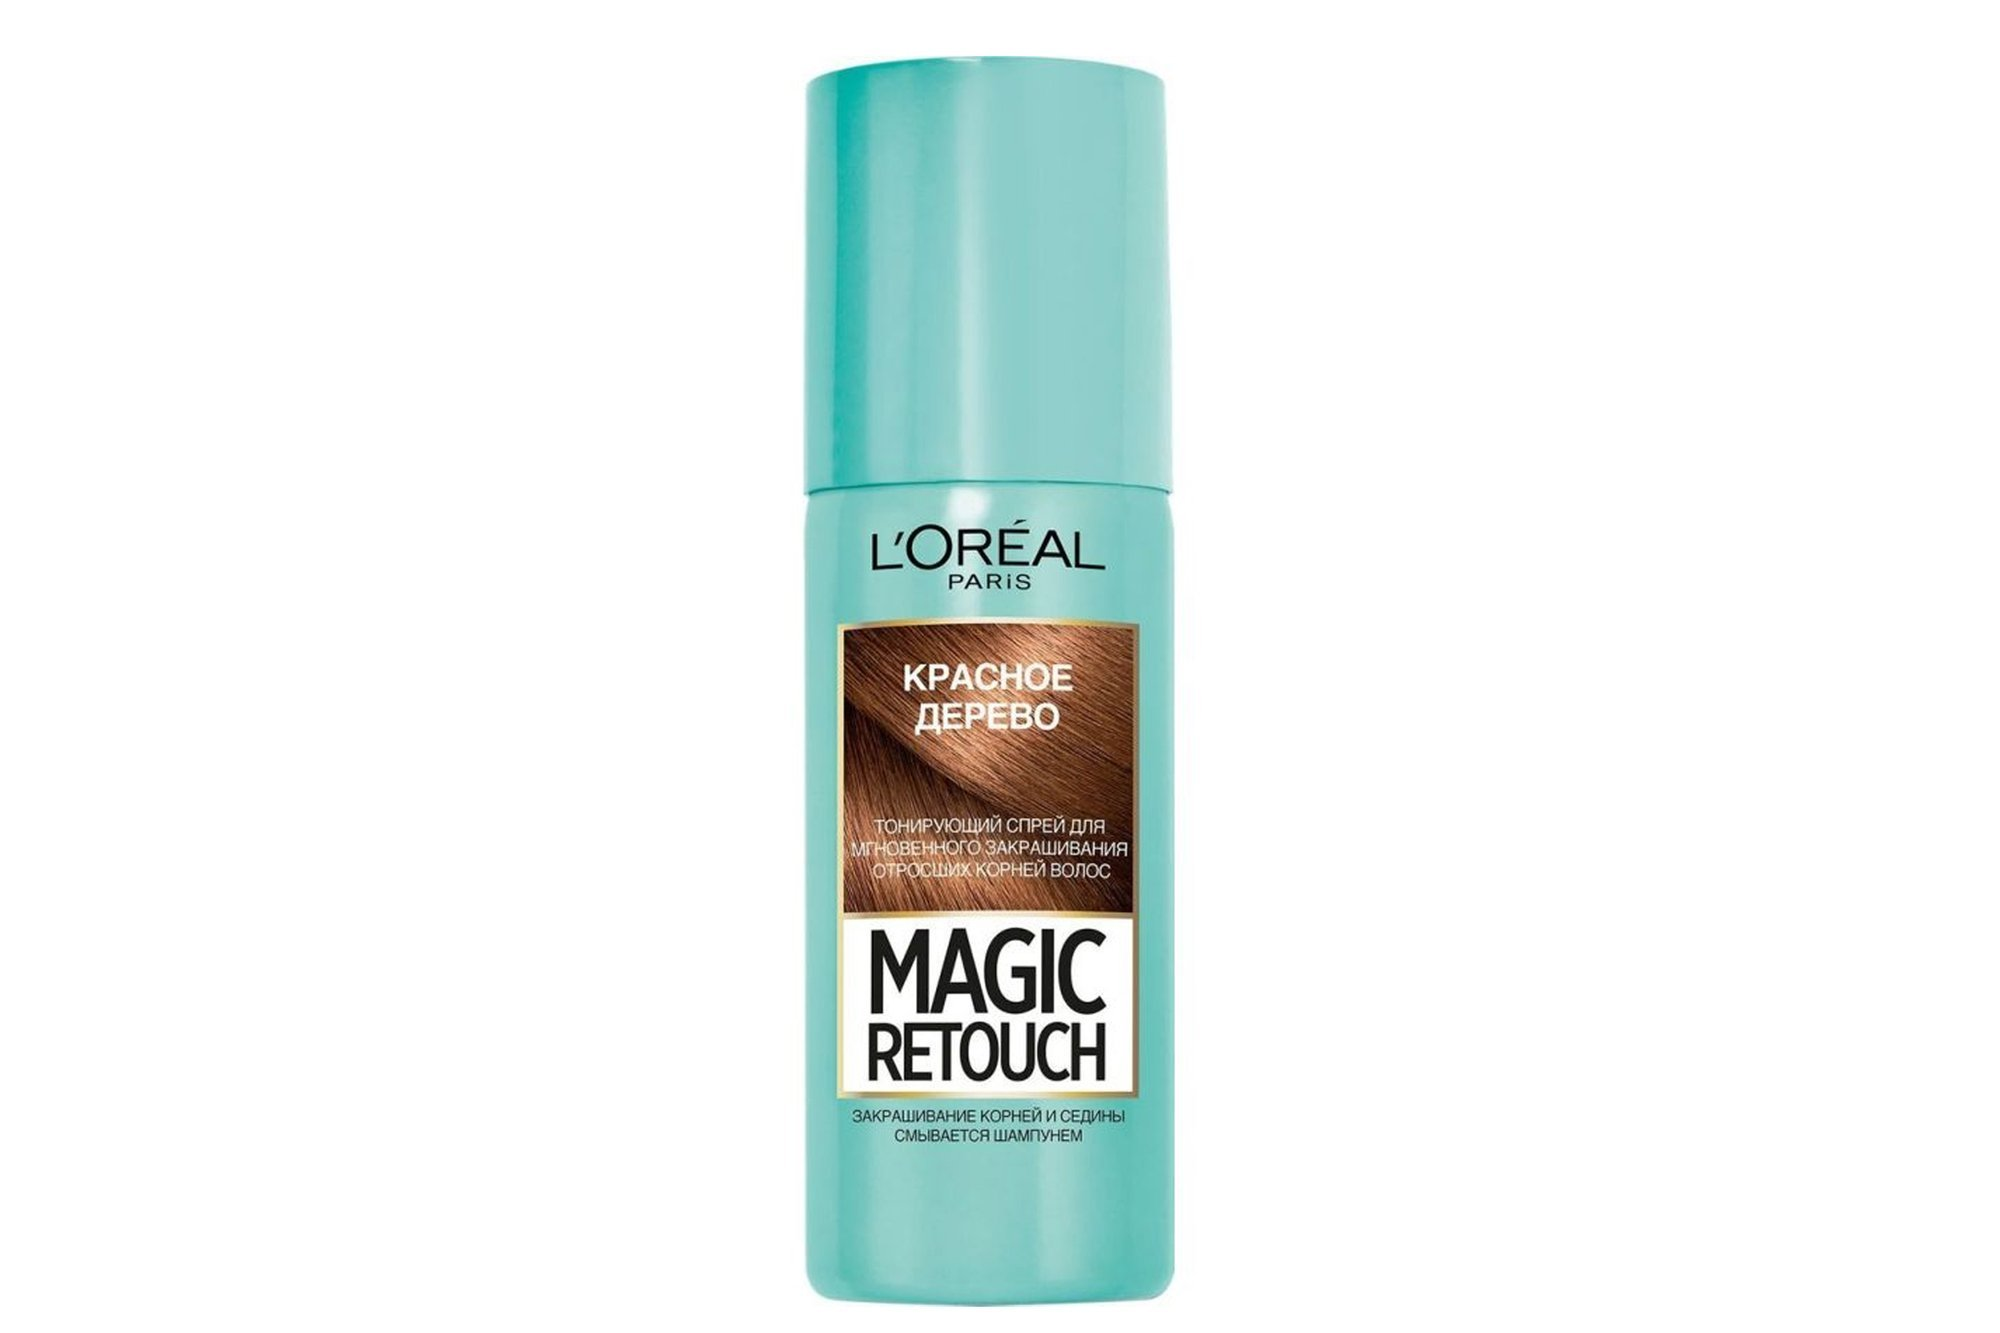 L'Oreal Magic Retouch Mahogany Brown Temporary Instant Root Concealer Spray